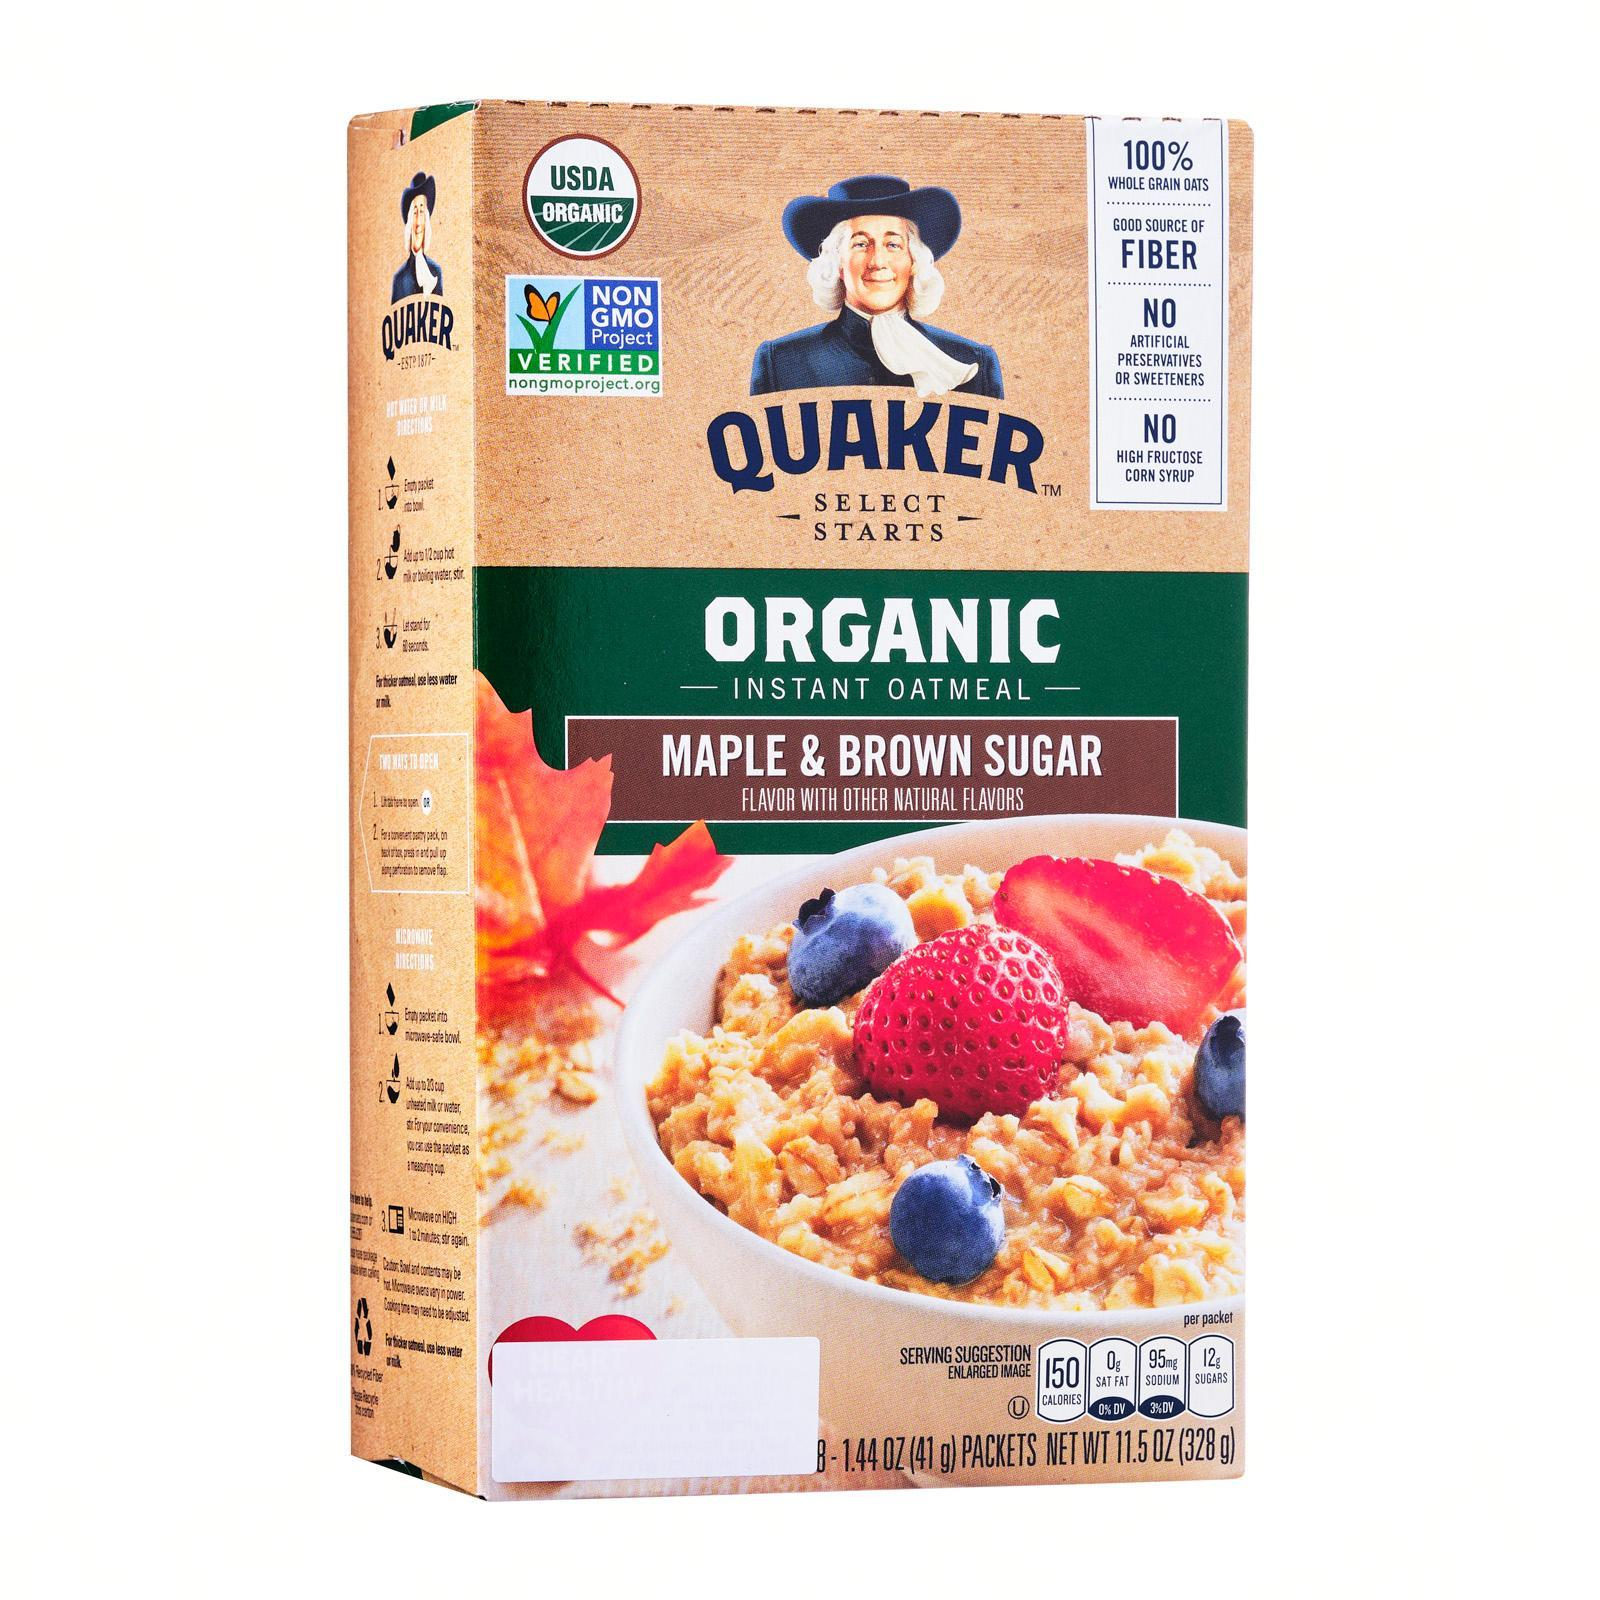 QUAKER Organic Instant Oatmeal (Maple and Brown Sugar)